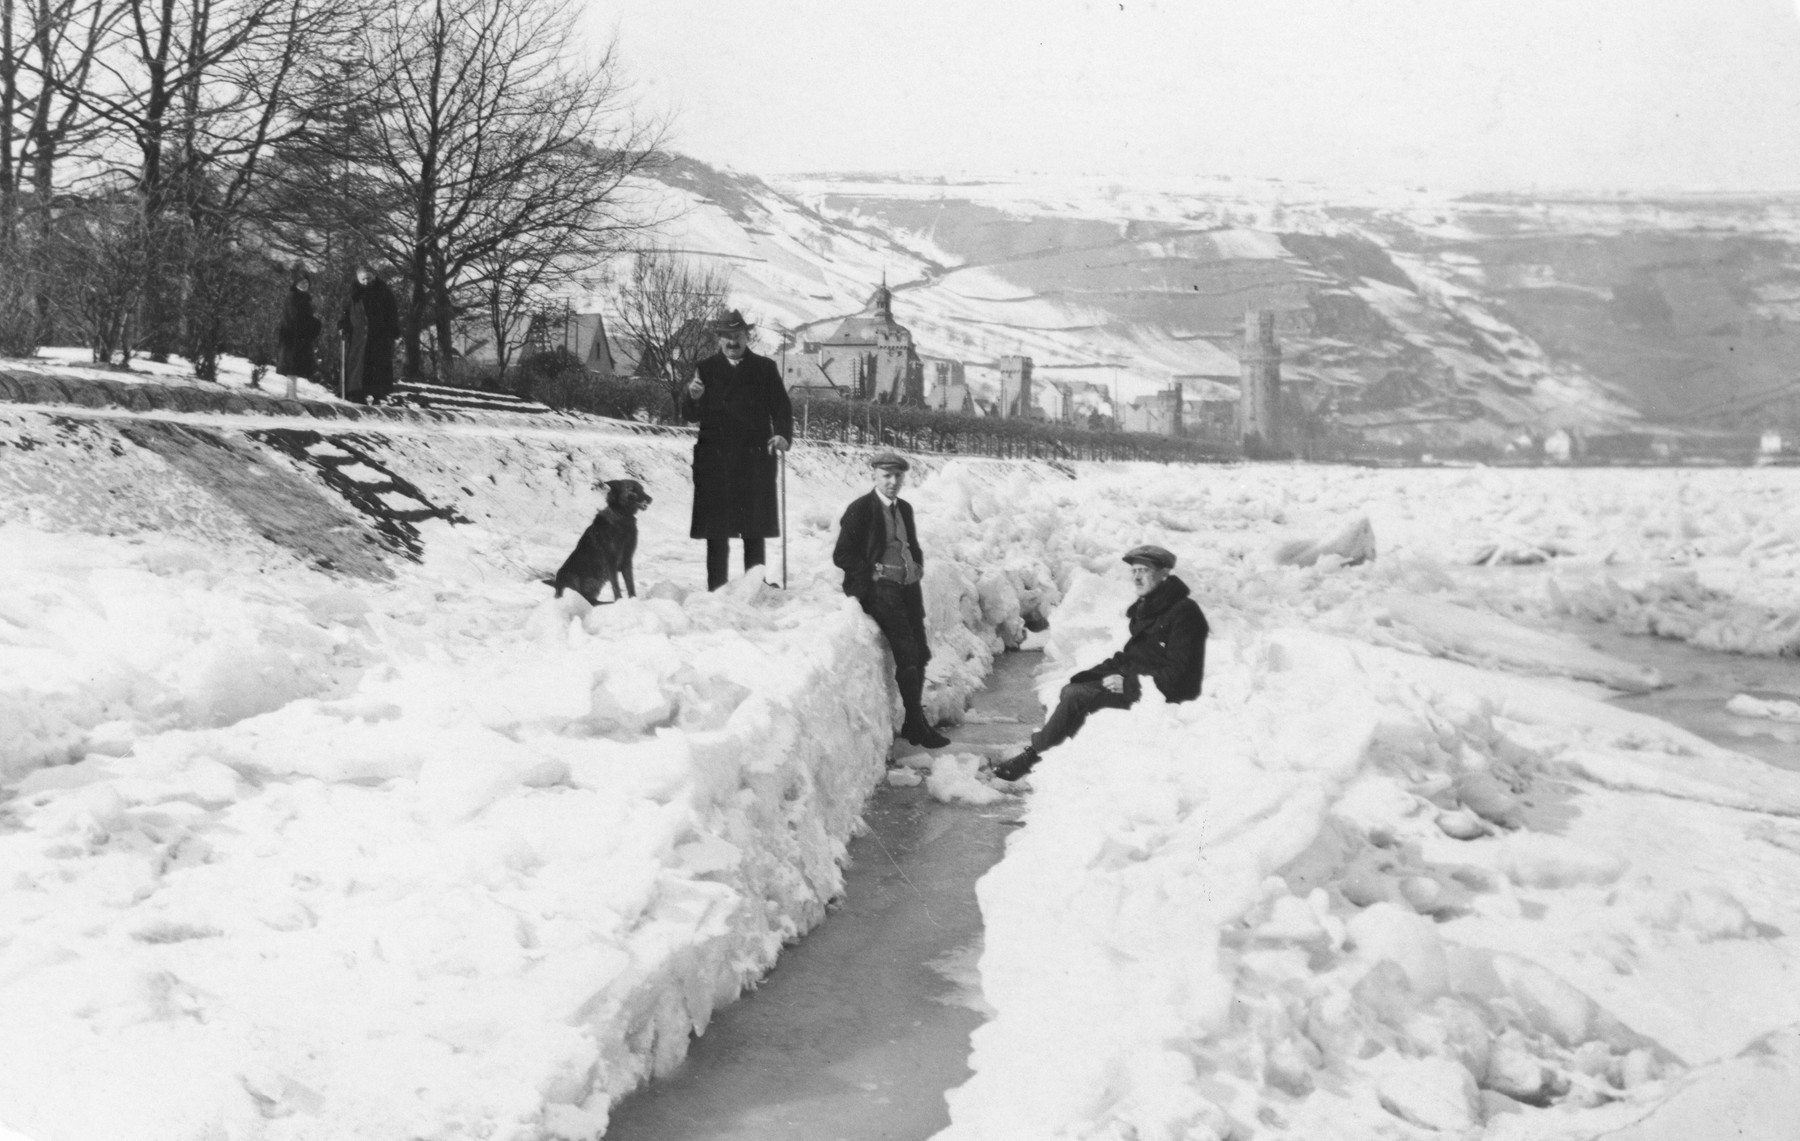 Gustav Gerson (left) with his dog and other two men on the frozen river Rhein, in the background is the town of Oberwesel.